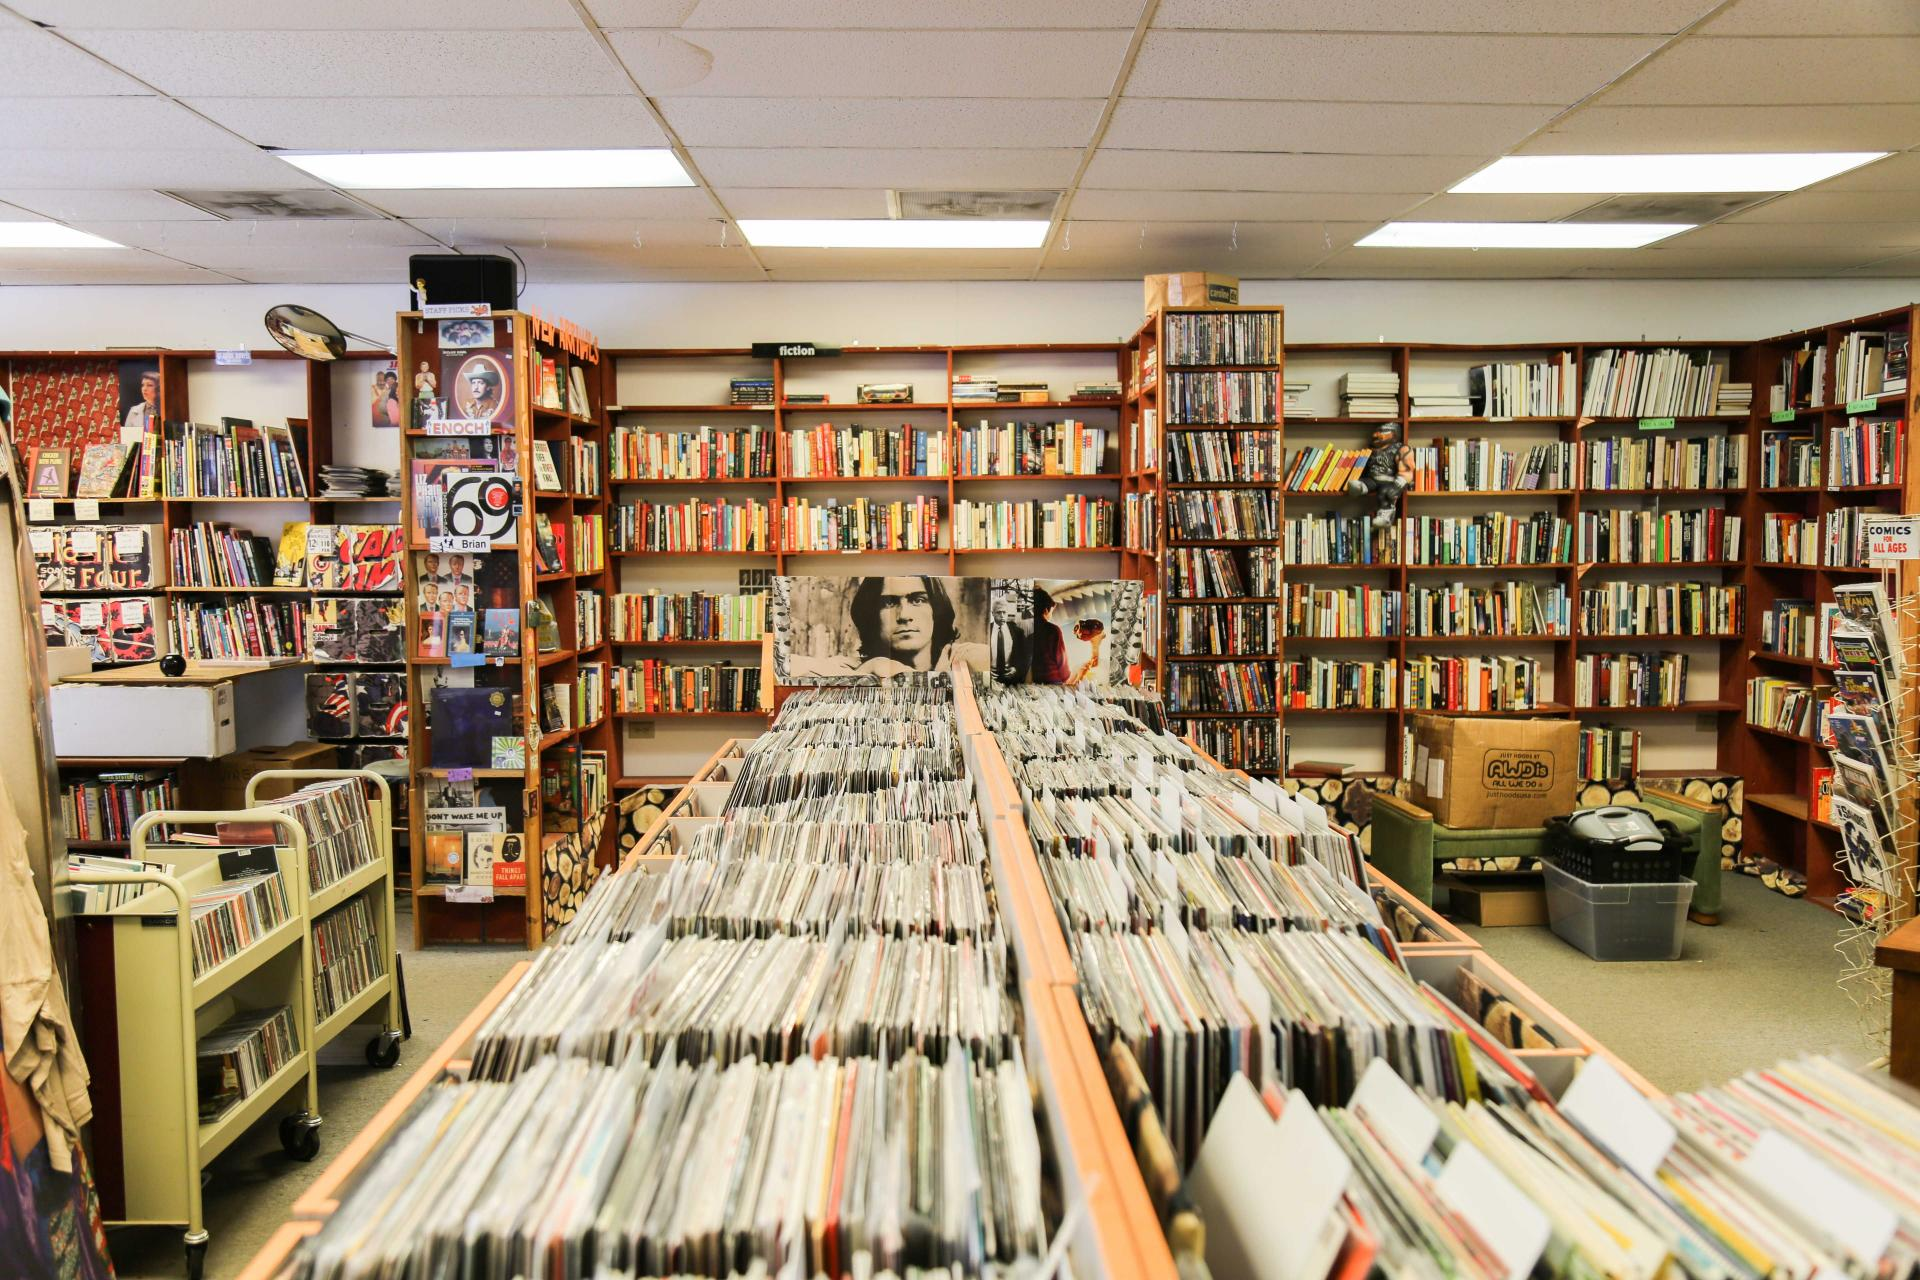 Pictured here - the interior of Nice Price Books & Recrods in Raleigh, NC.